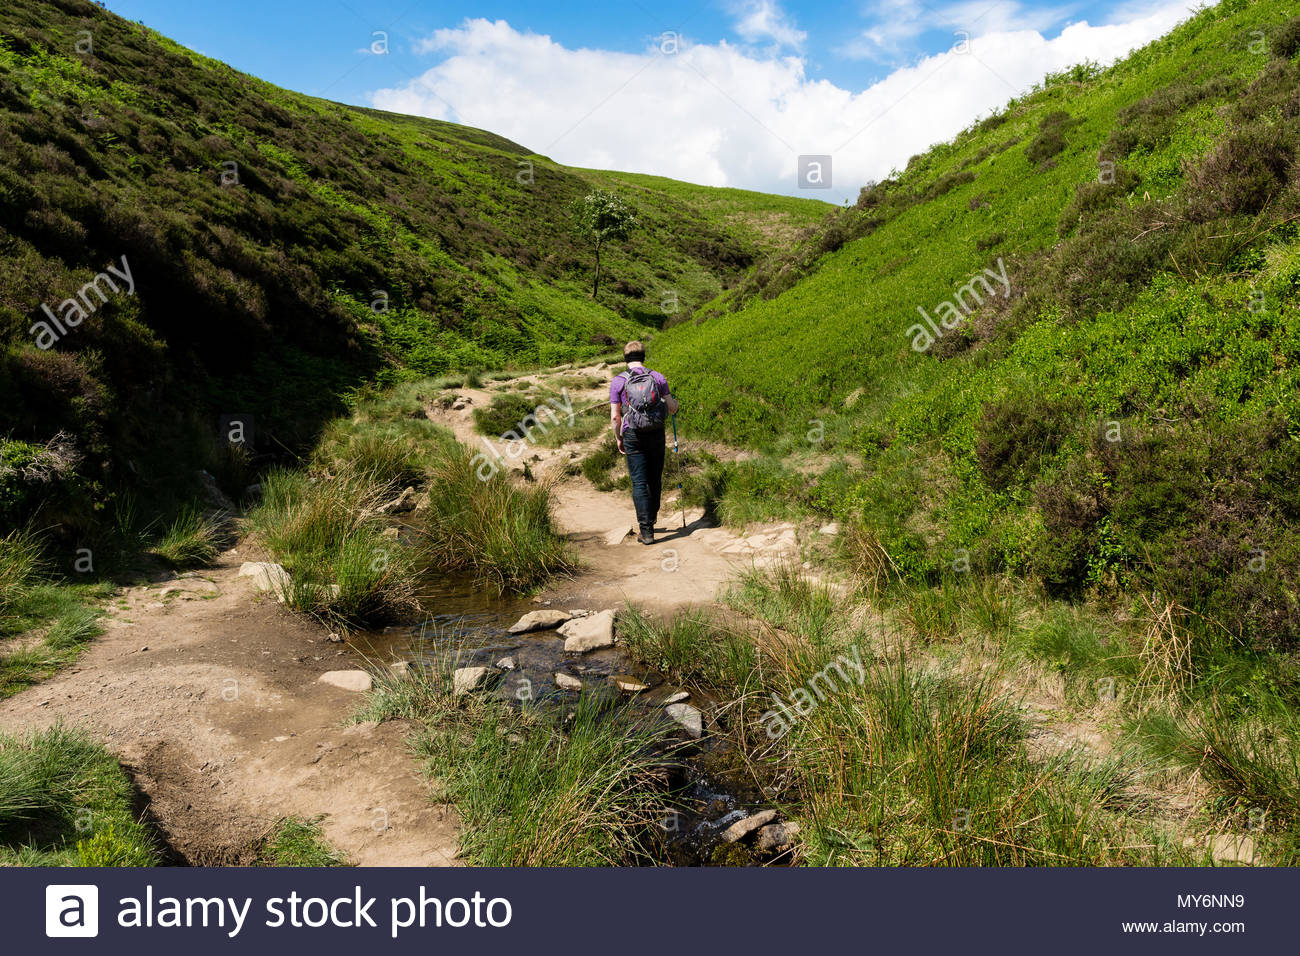 Outdoor Kinder Hiking Kinder Scout Stock Photo 188848165 Alamy